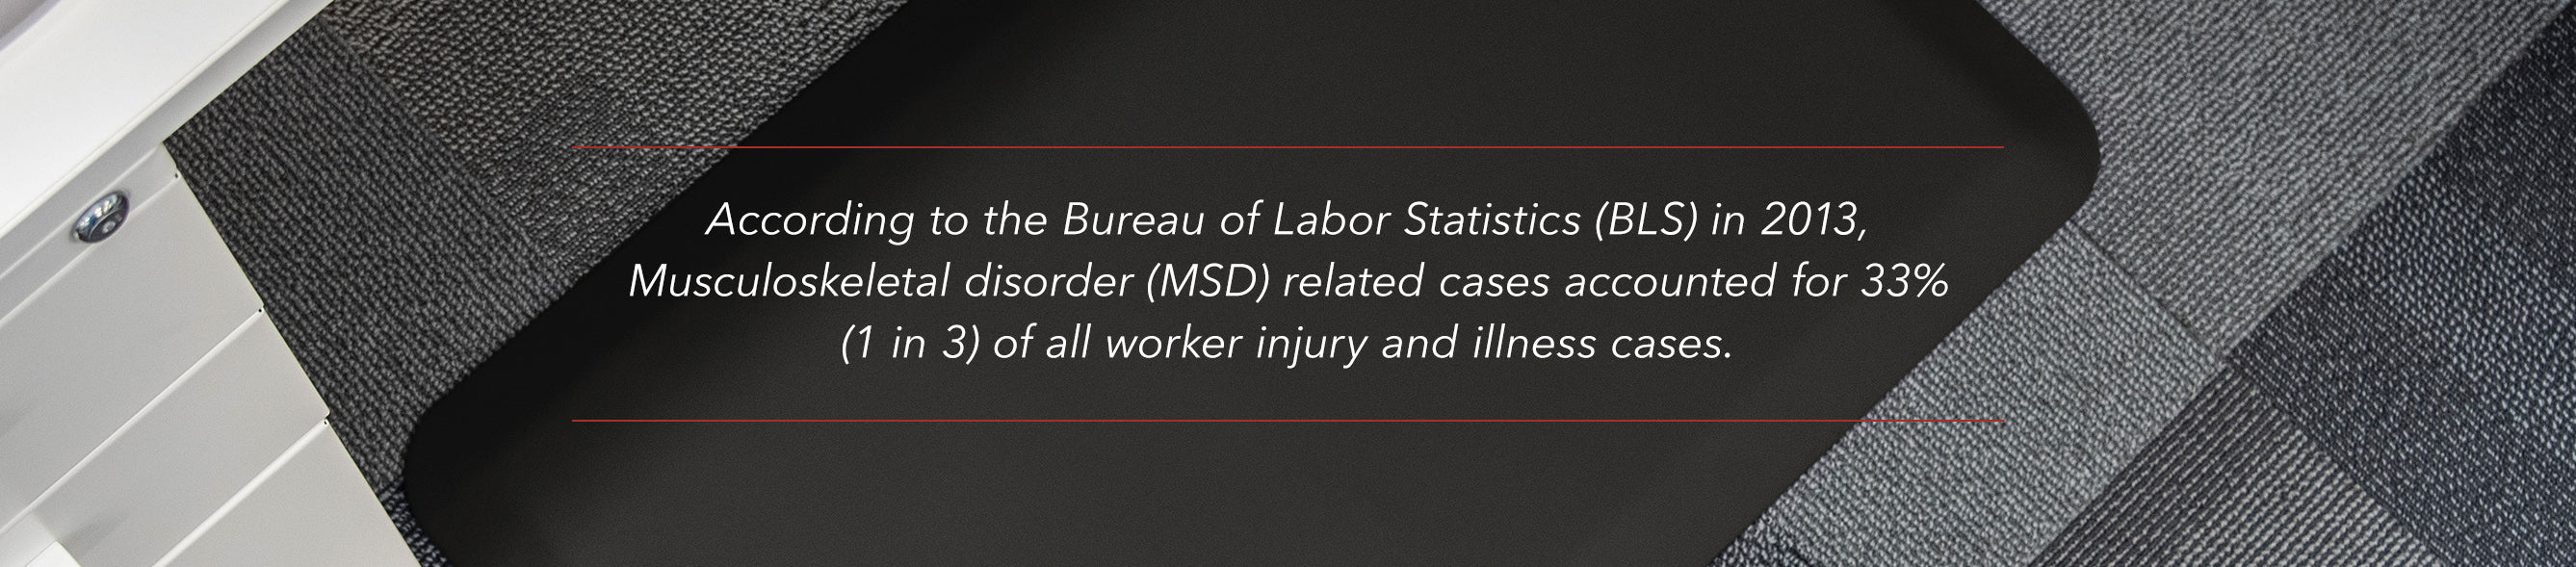 According to the Bureau of Labor Statistics in 2013, Musculoskeletal disorder related cases accounted for 33% of all worker injury and illness cases.